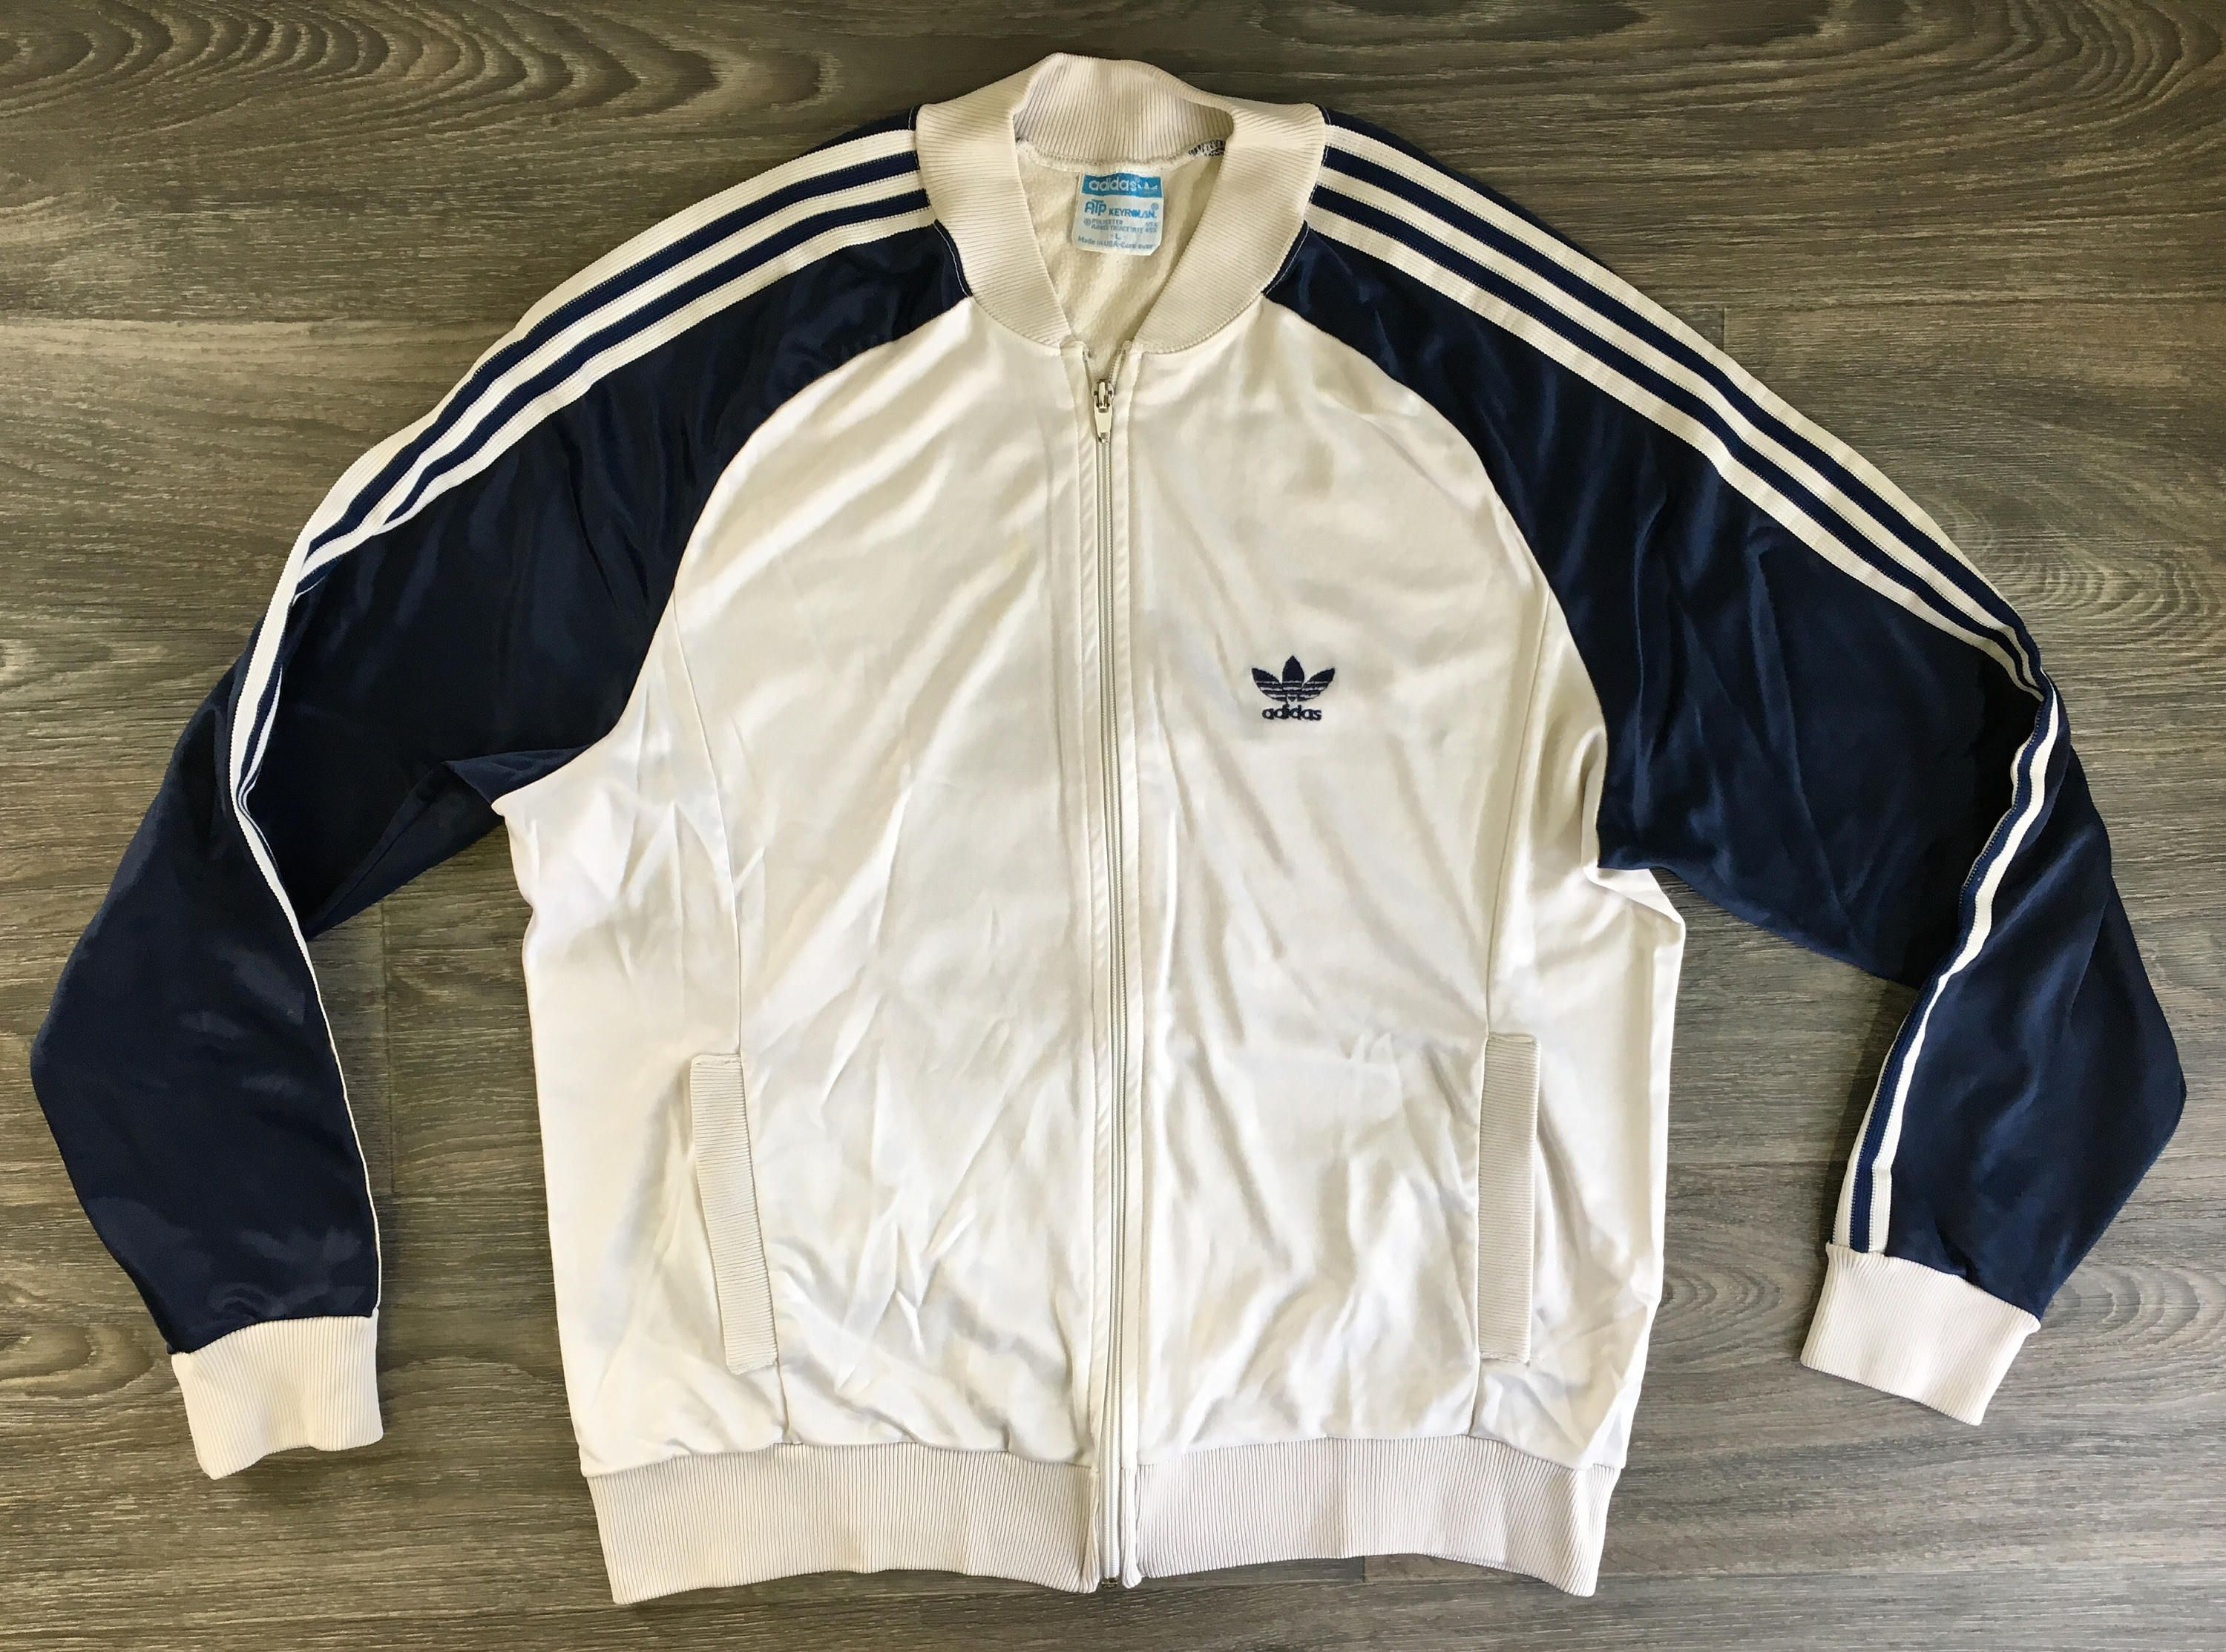 562ddbf61d72e ADIDAS WARM UP Jacket 70s Vintage Full Zip Coat Keyrolan Hip Hop 3 ...